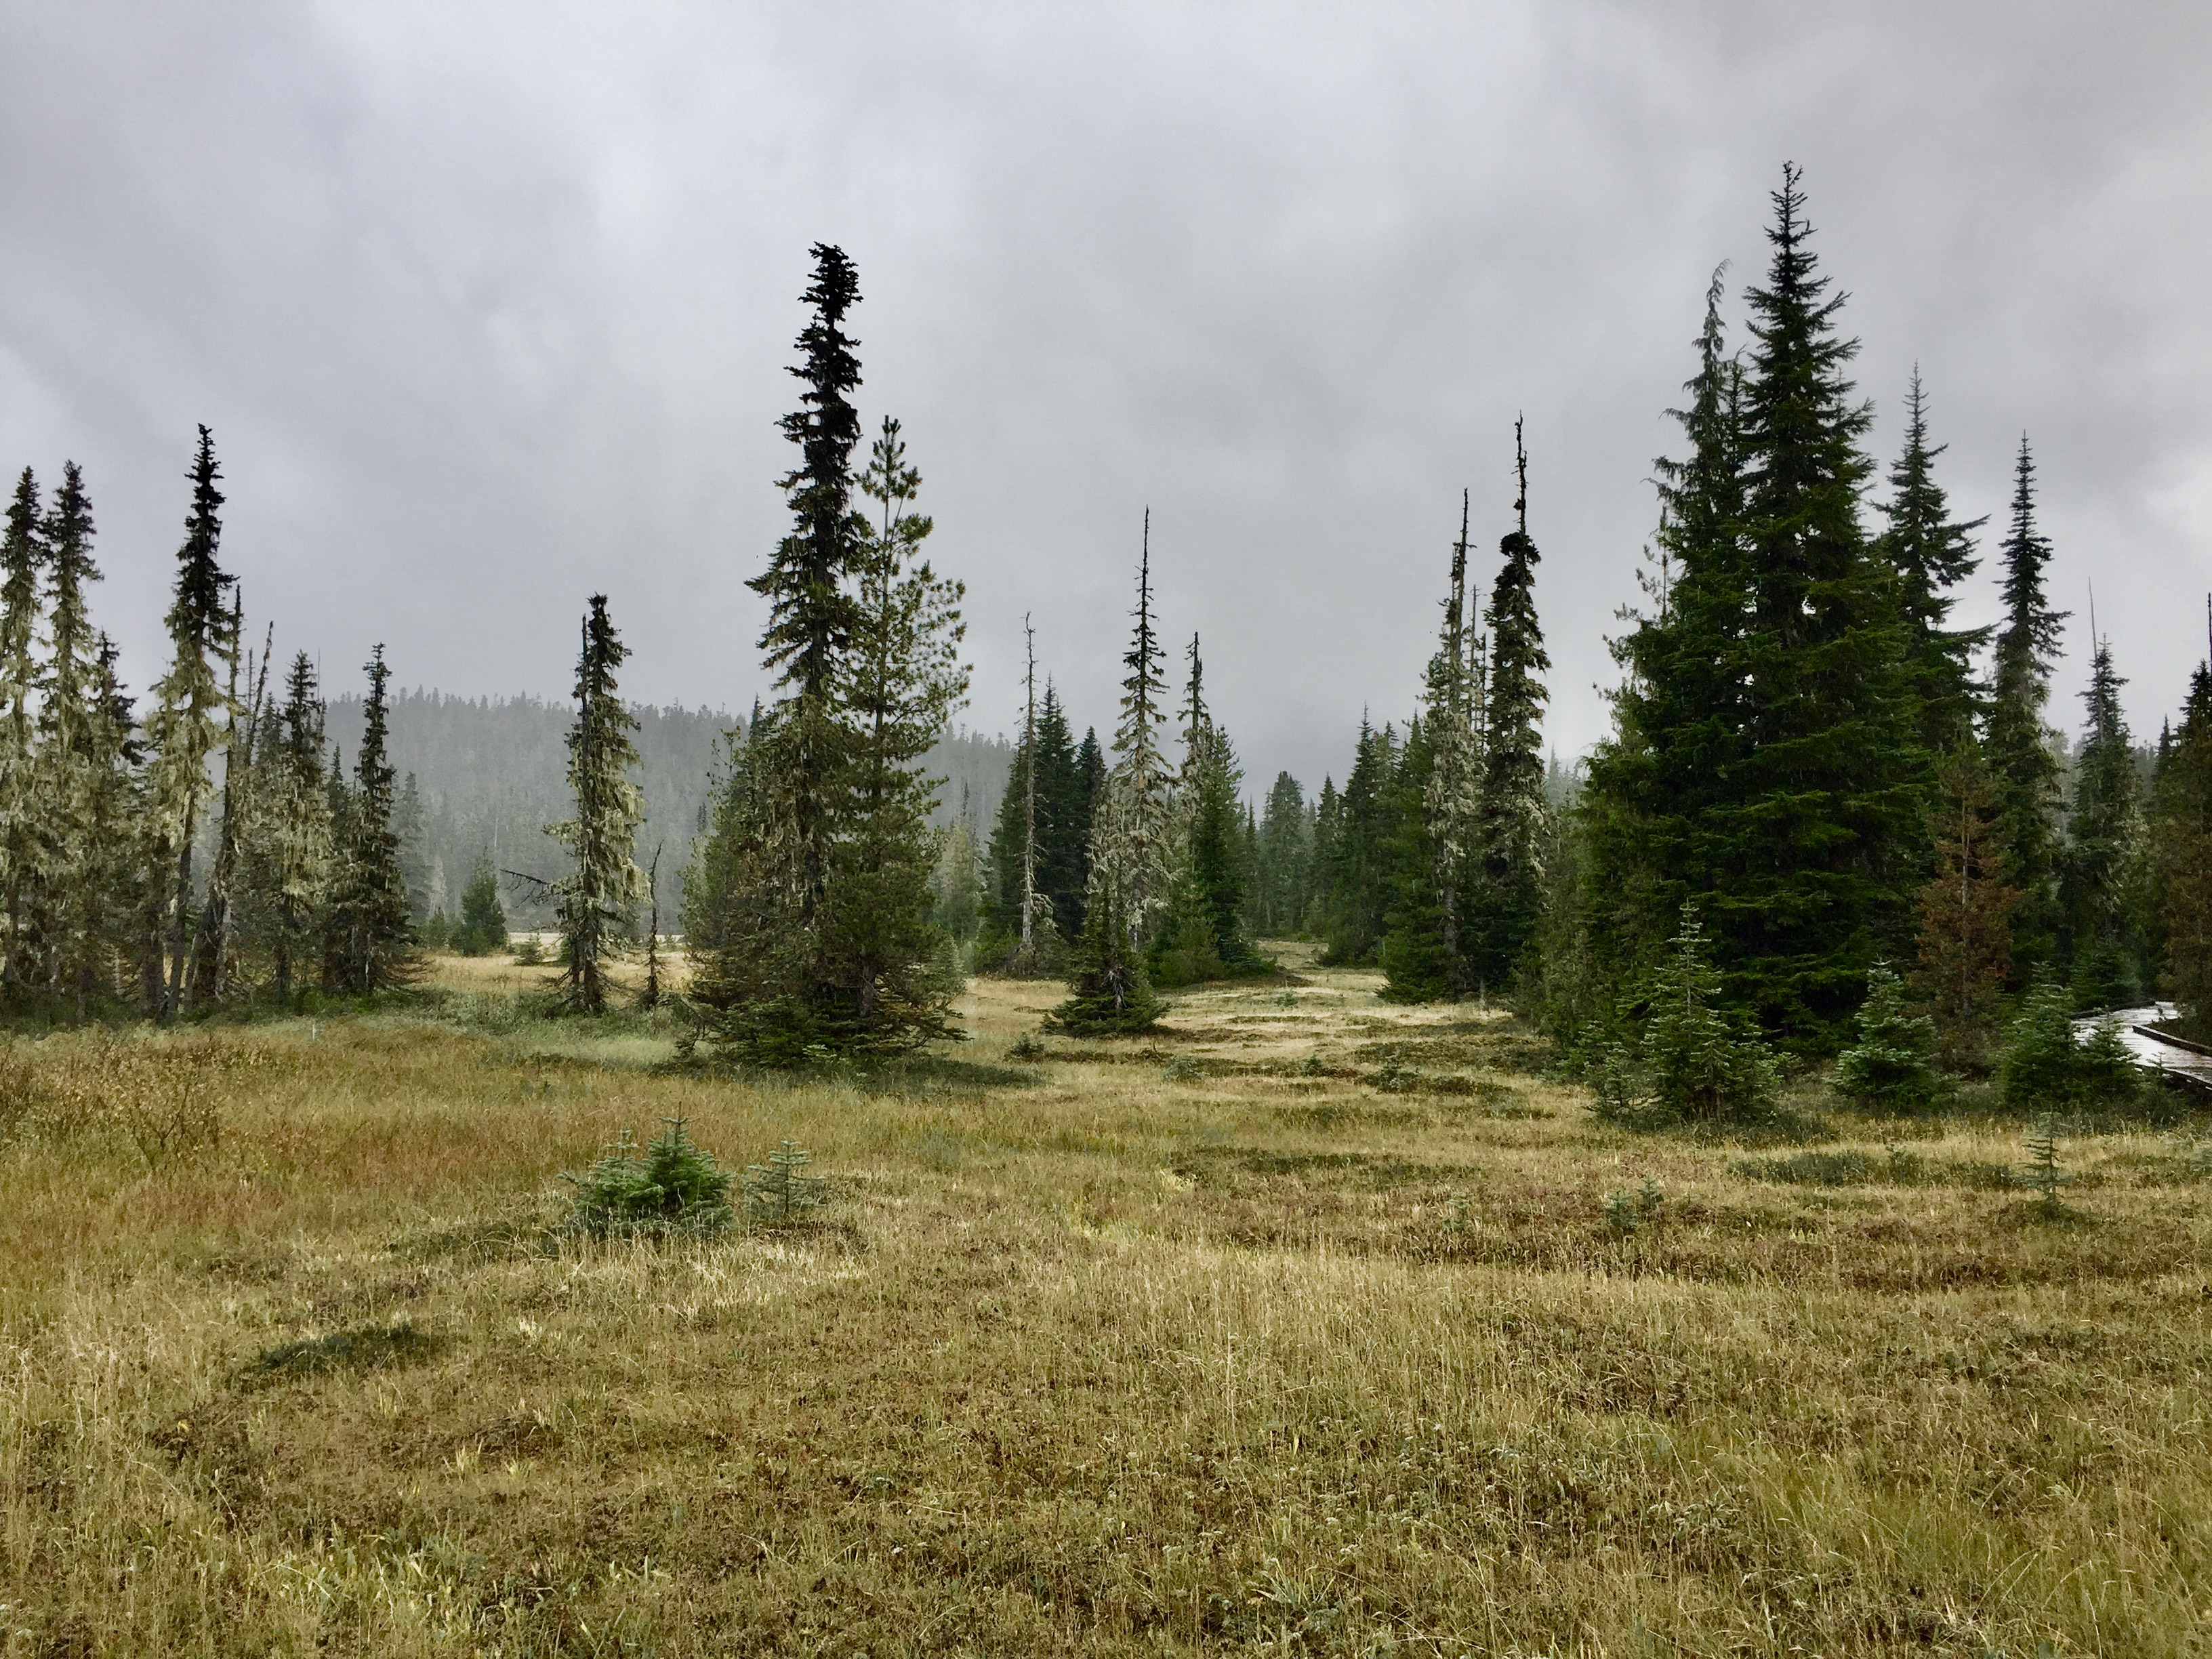 September, 2020 - Vancouver Island, British Columbia - Strathcona Provincial Park - Forbidden Plateau - Alpine meadow and trees